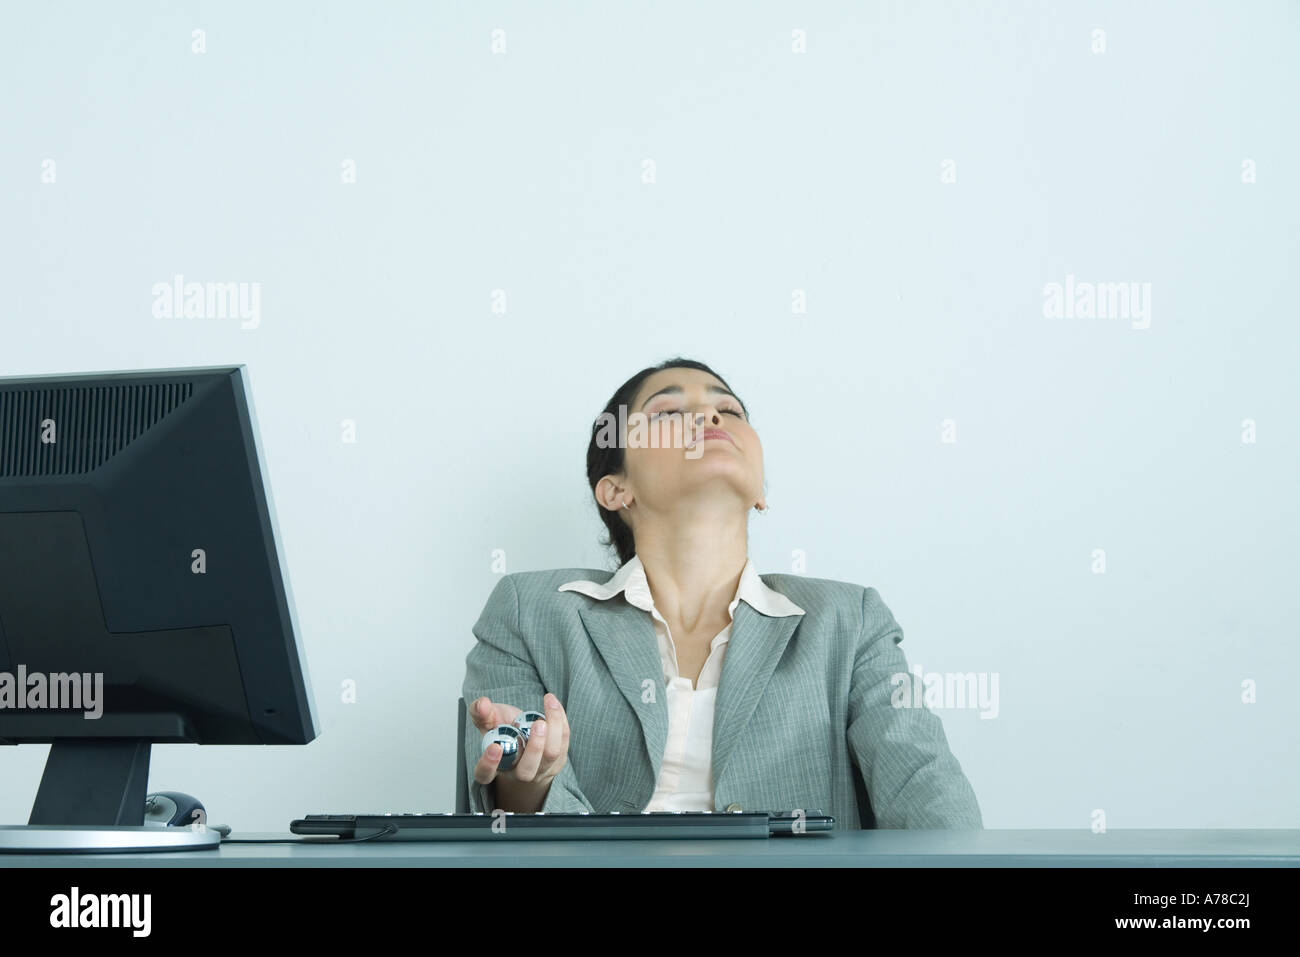 Businesswoman holding yinyang balls, sitting at desk, head back and eyes closed - Stock Image